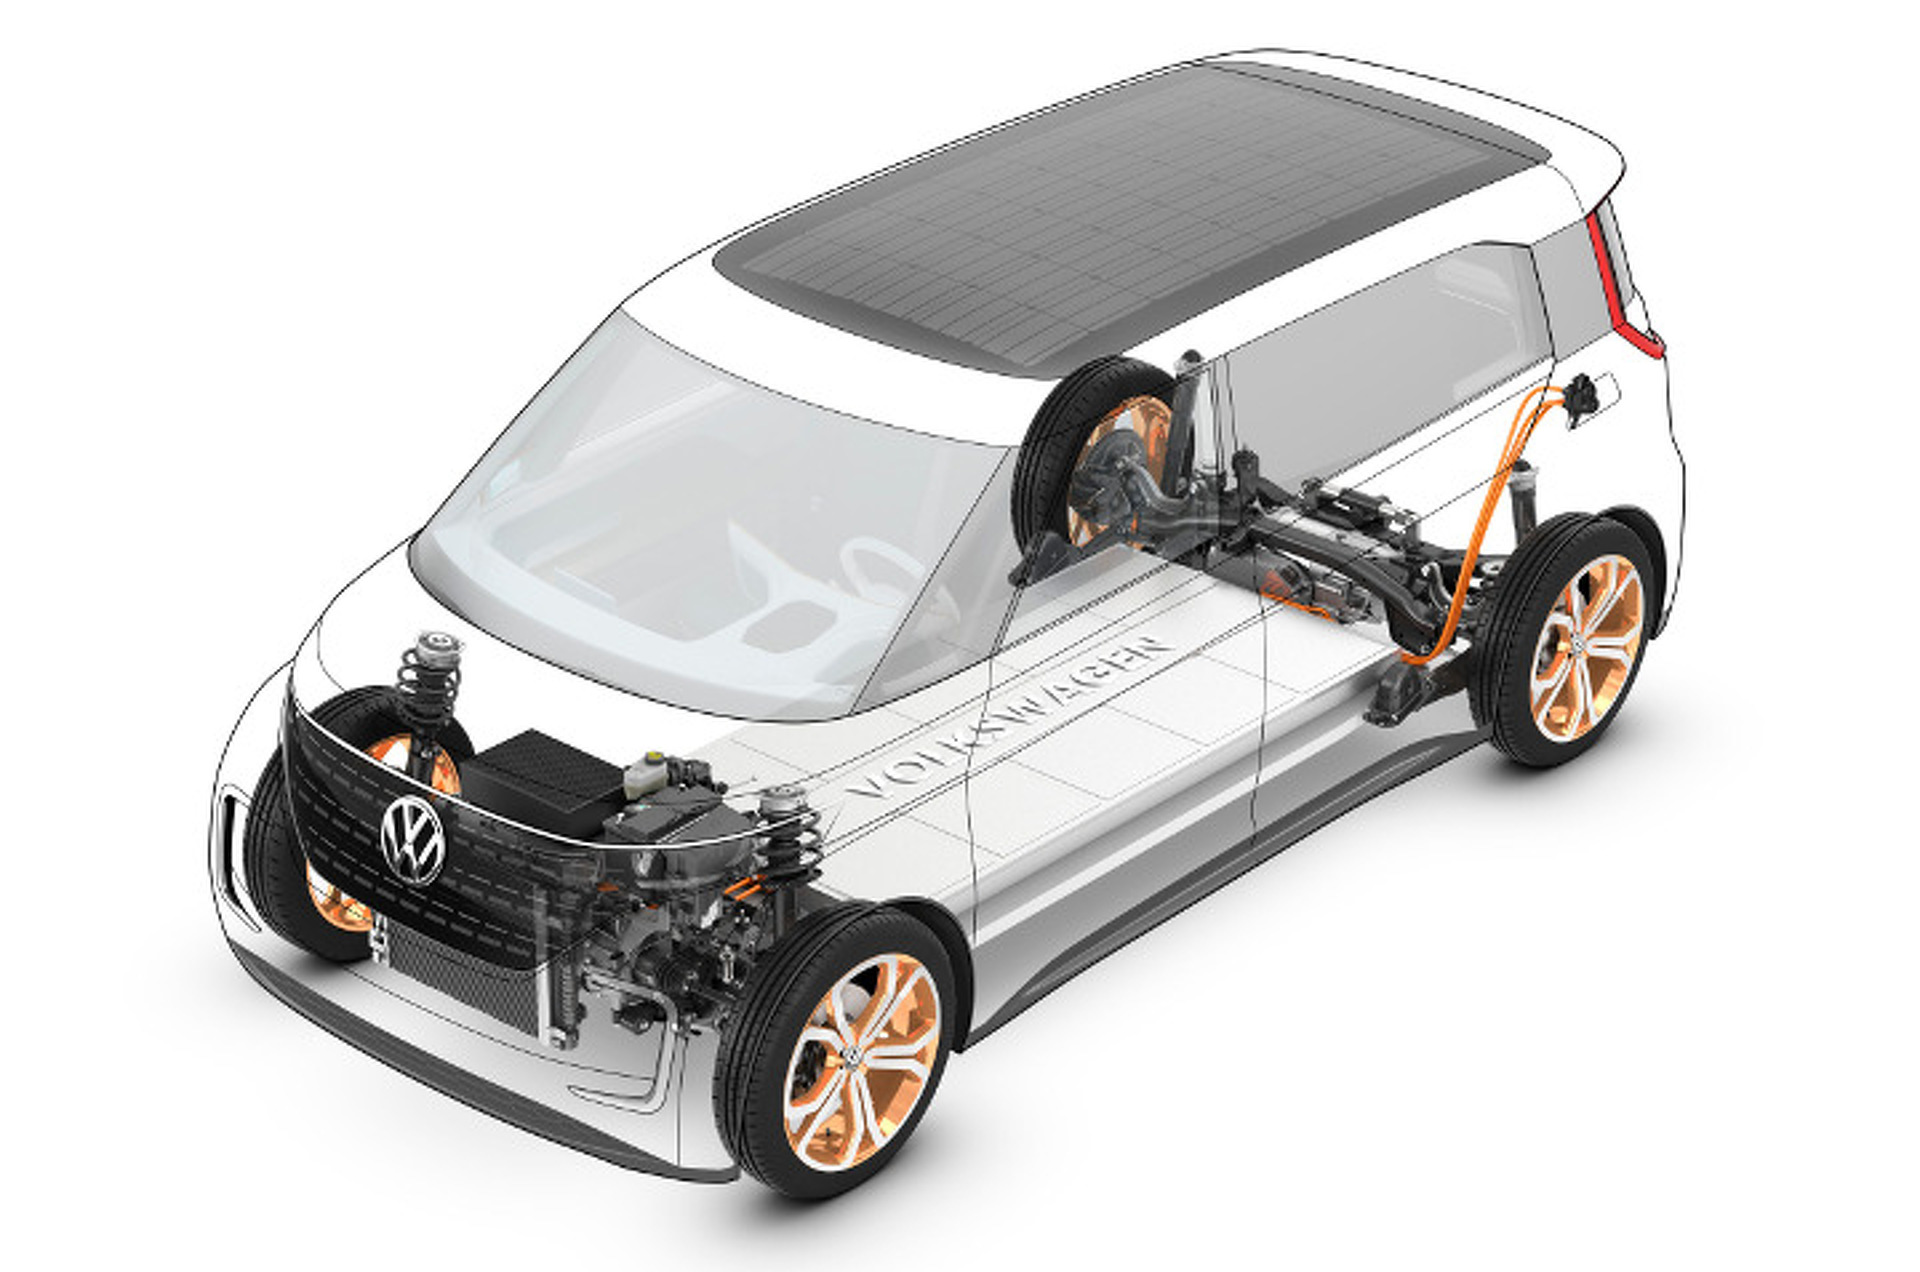 CES 2016: 7 Things to Know About the Volkswagen BUDD-e Concept